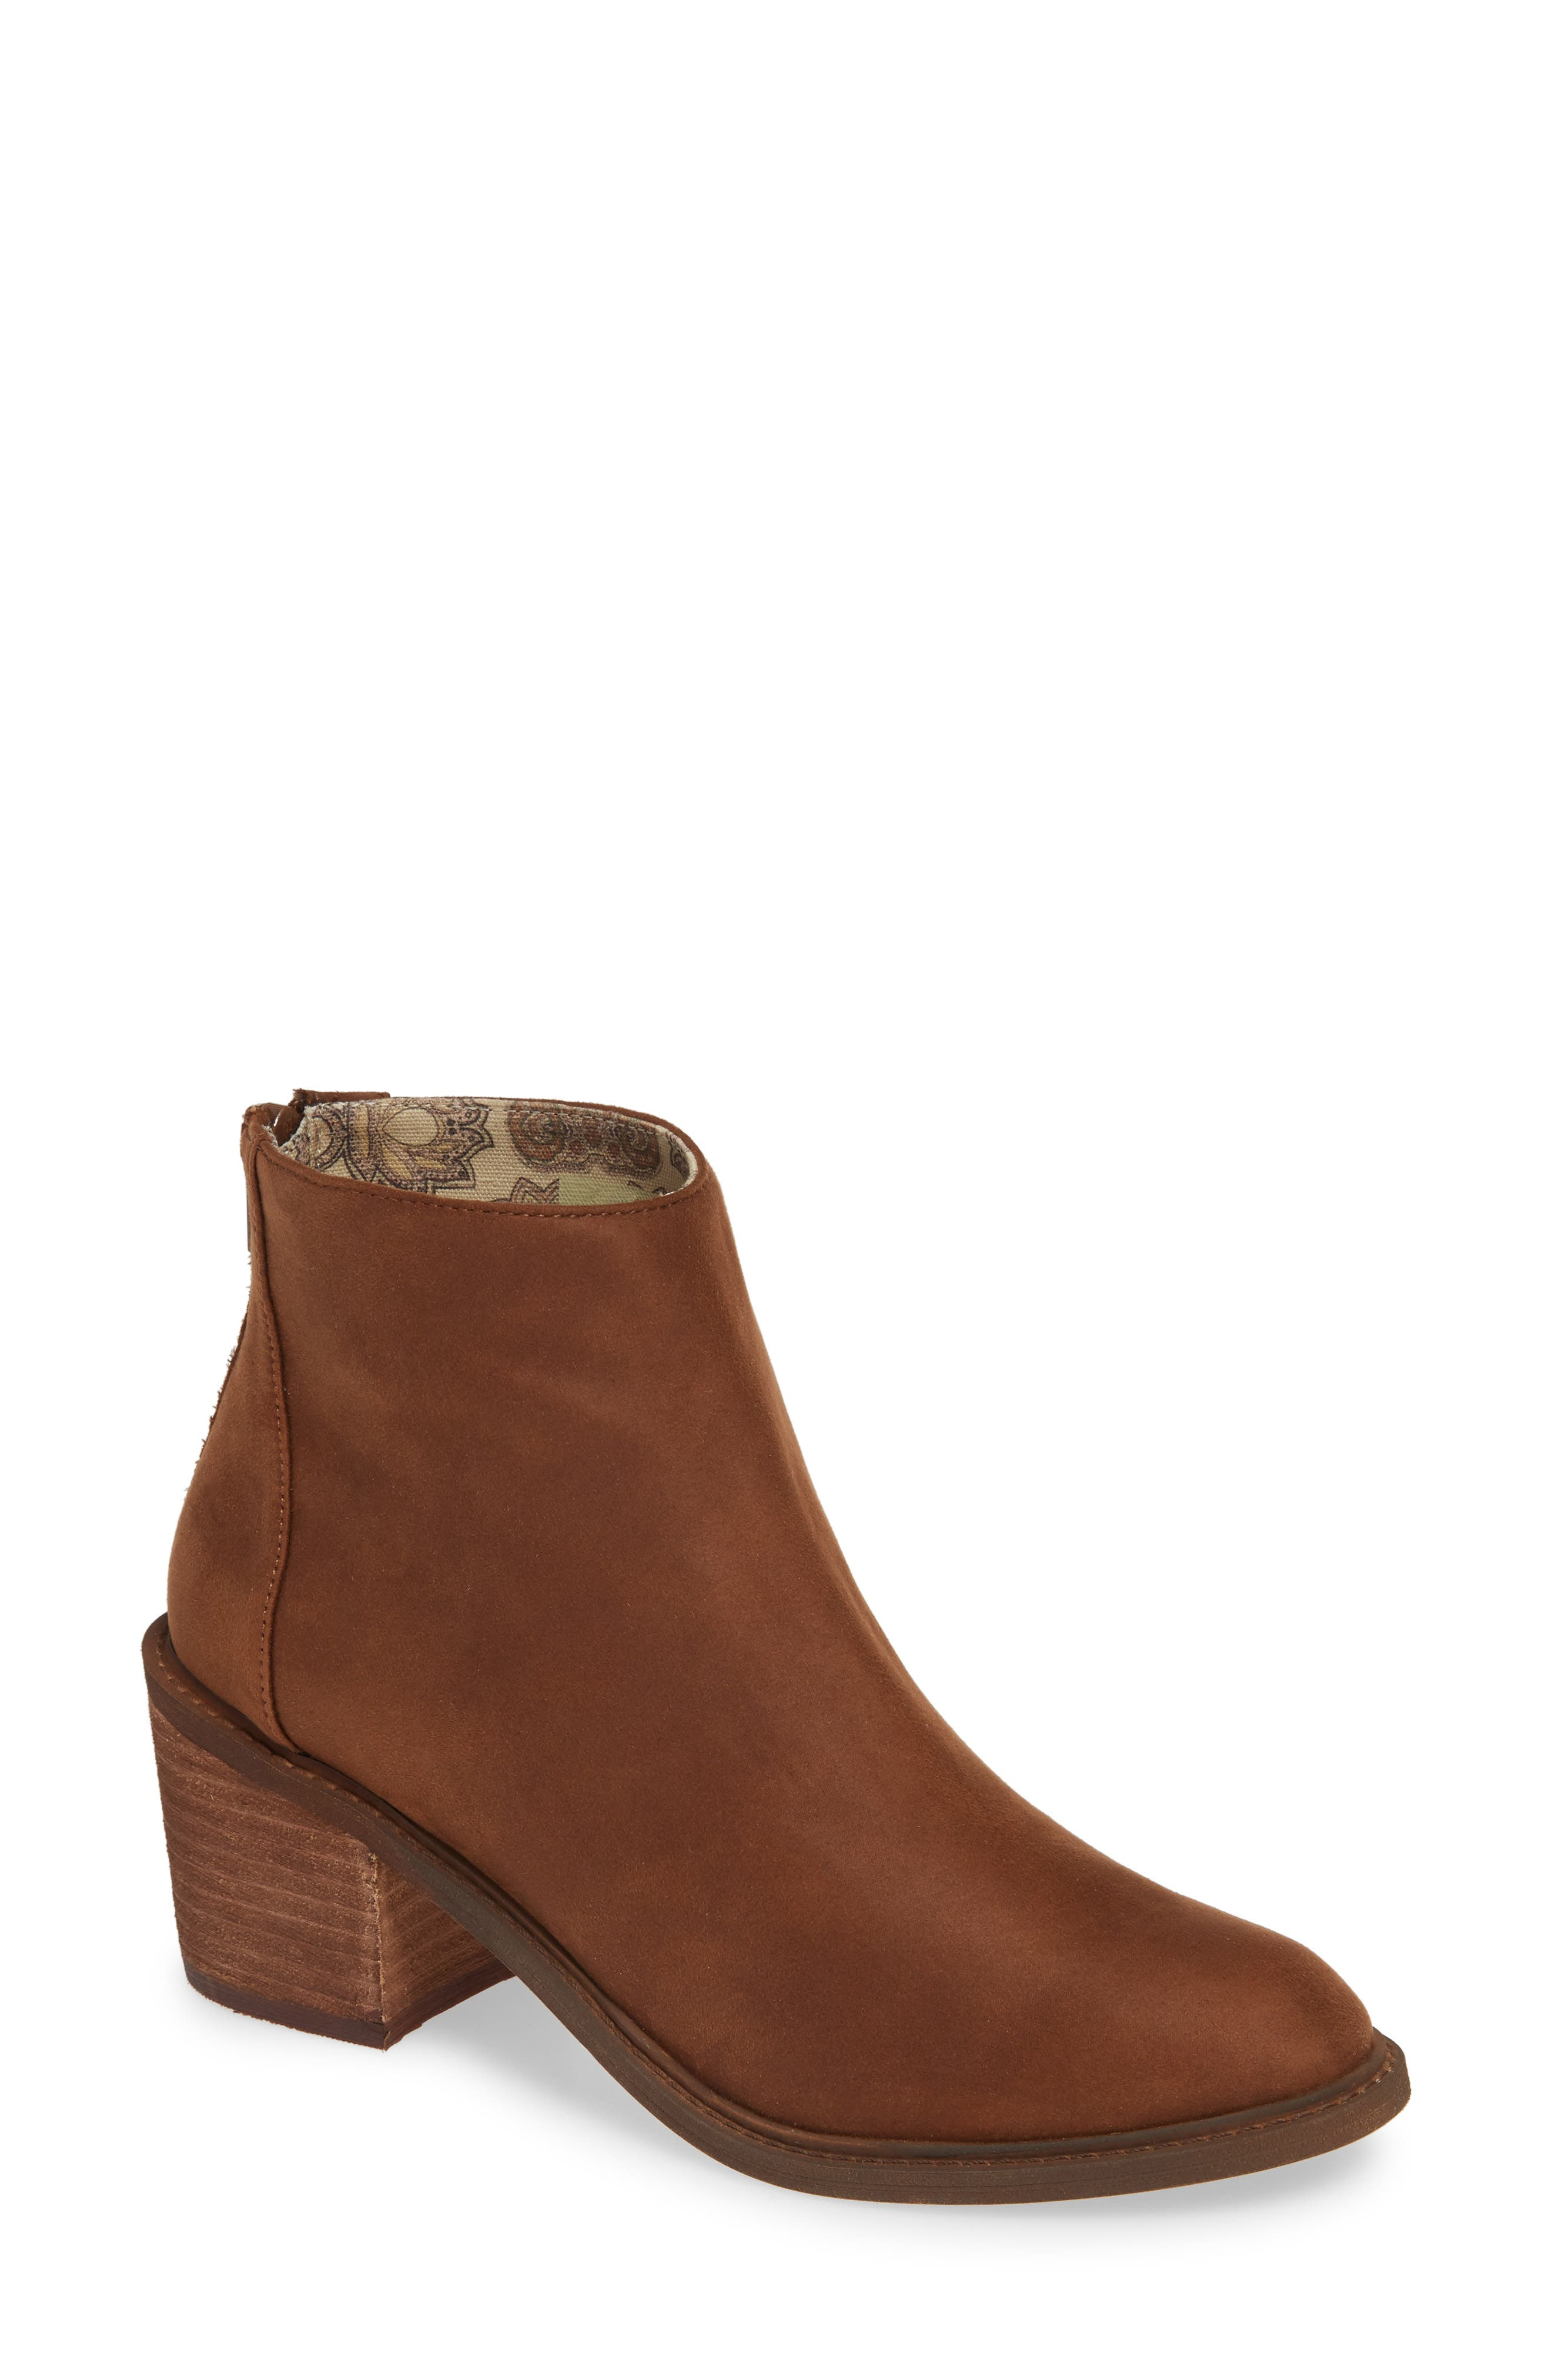 Juno Bootie, Main, color, BRUSHED SATIN TOBACCO